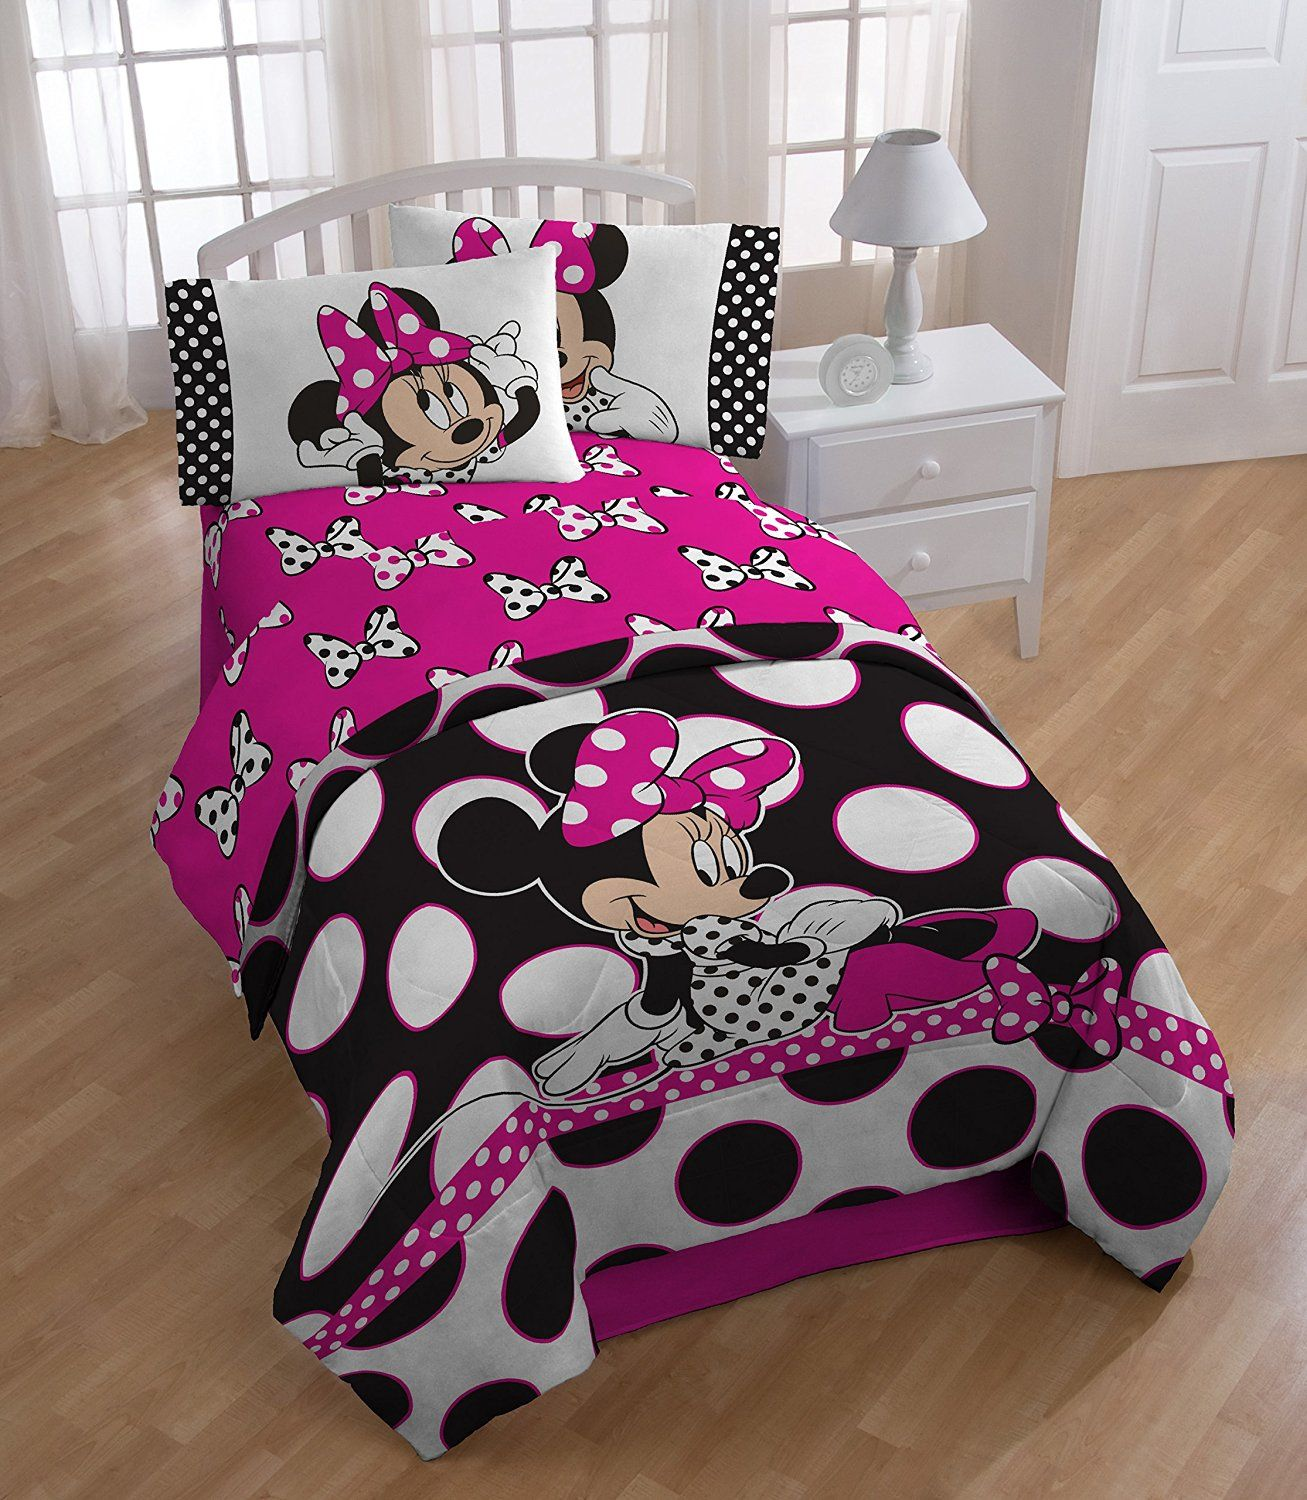 Best Rock The Dots With A Polka Dotted Minnie Mouse Bed Set 400 x 300